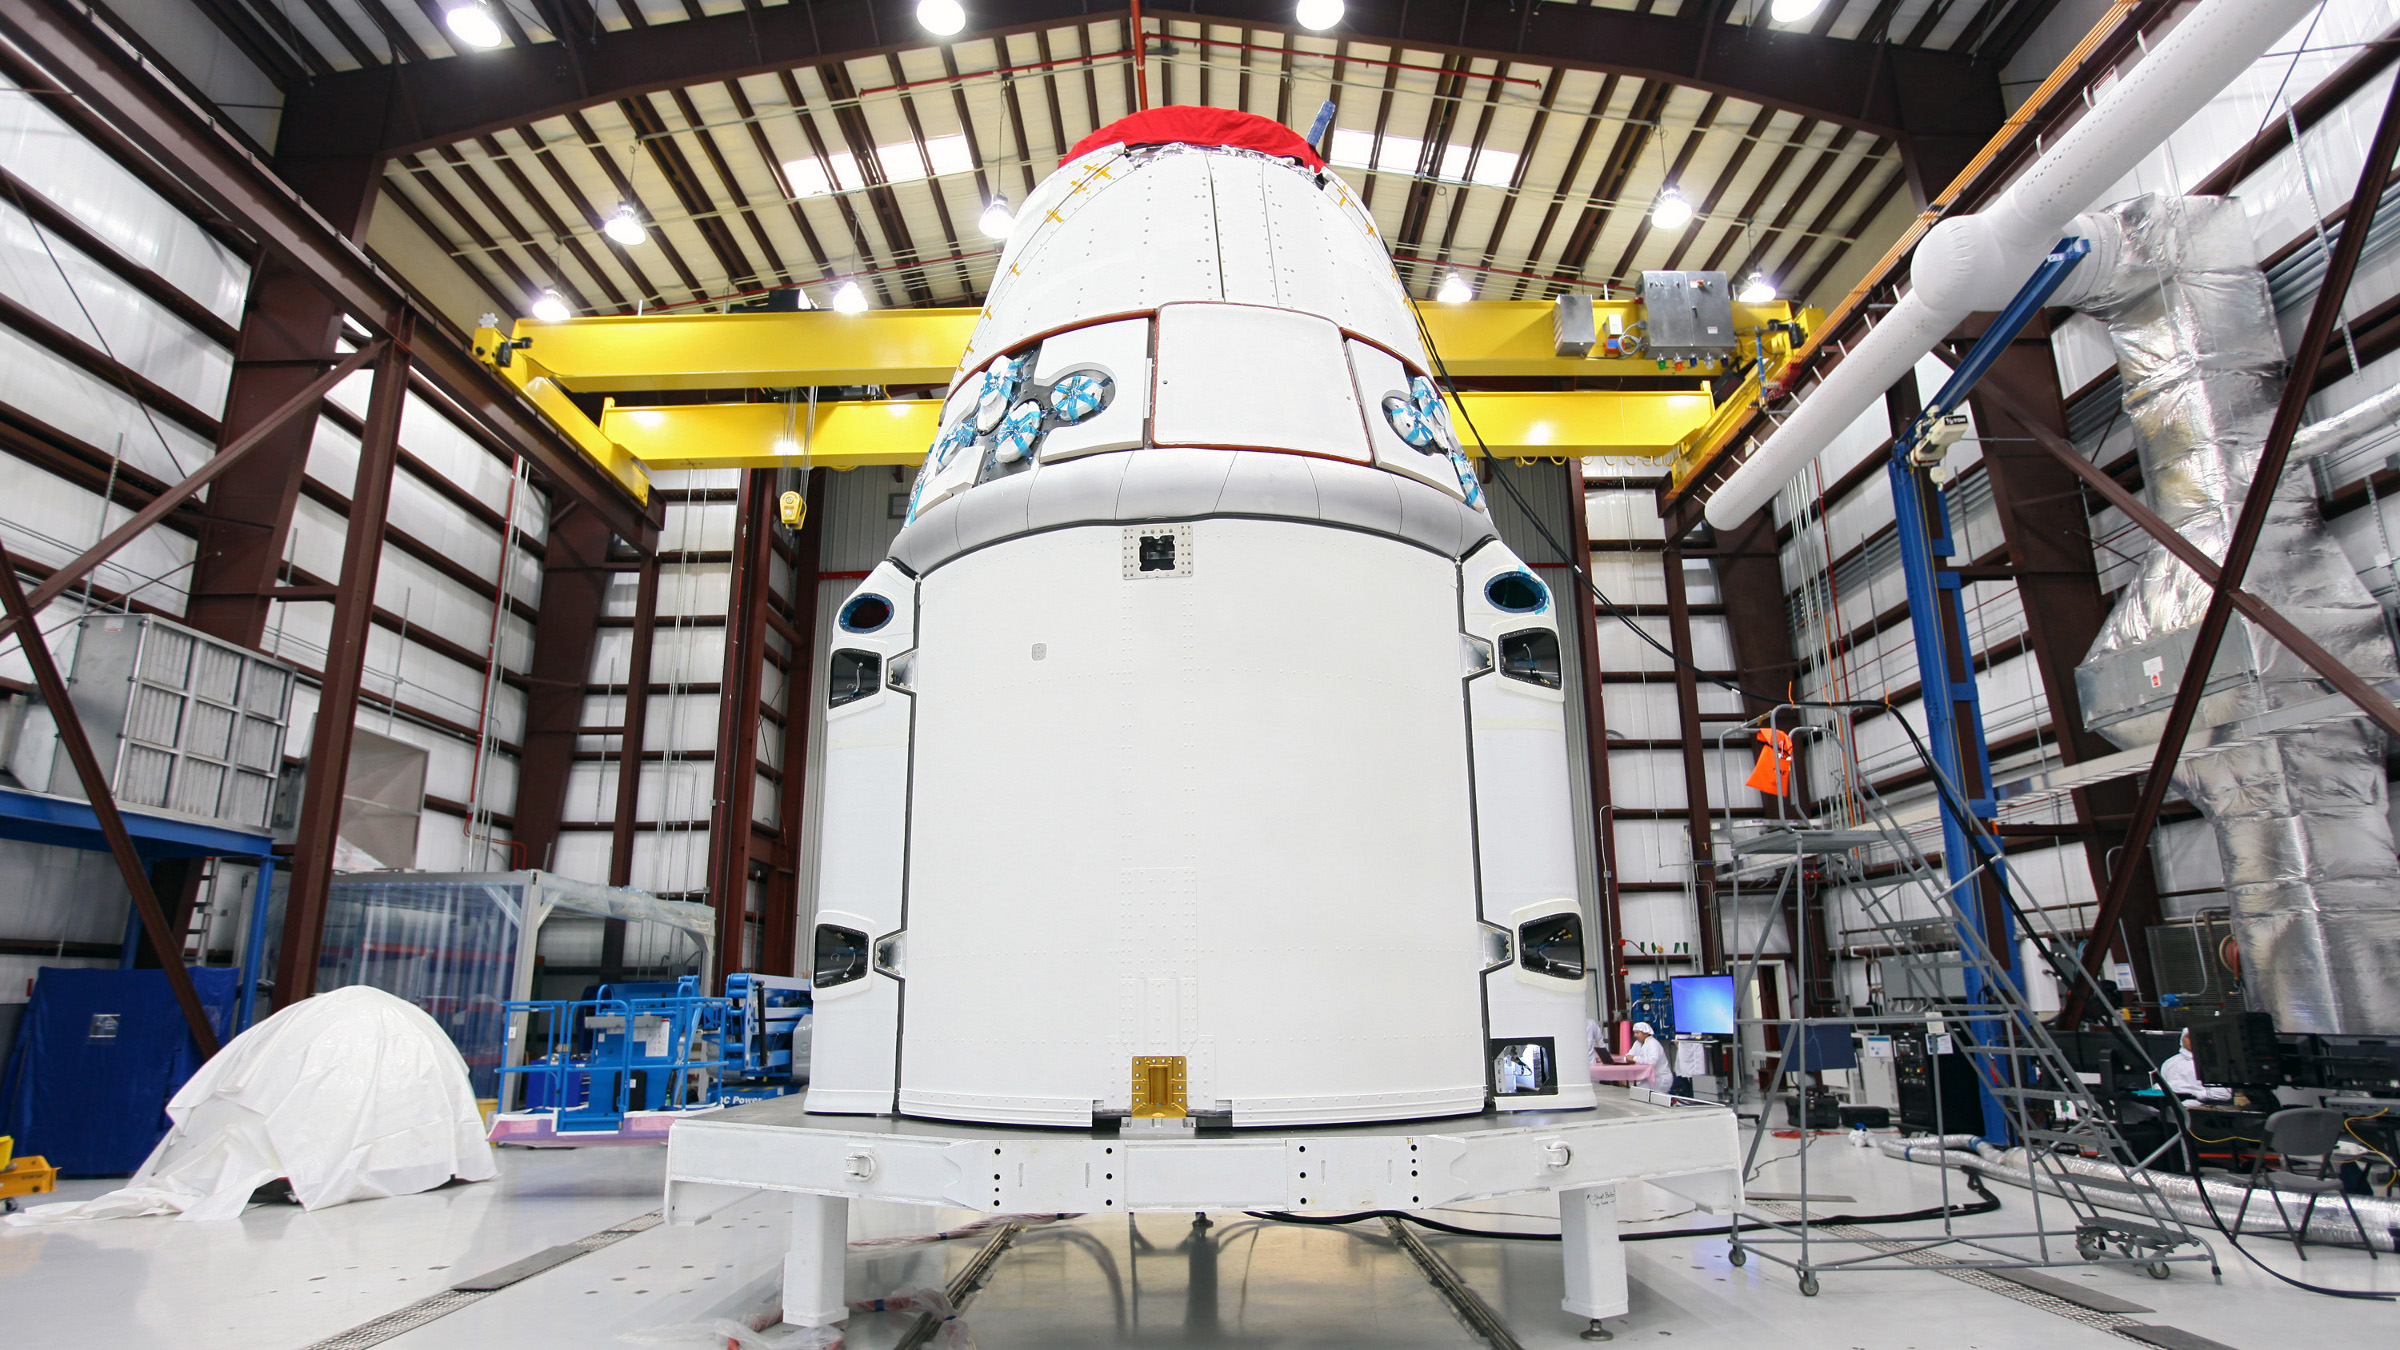 This Jan. 12, 2013 photo provided by NASA shows the Dragon spacecraft inside a processing hangar at Cape Canaveral Air Force Station in Cape Canaveral, Fla. where teams had just installed the spacecraft's solar array fairings. The California company known as SpaceX is scheduled to launch its unmanned Falcon rocket on Friday morning, March 1, 2013, carrying a Dragon capsule containing more than a ton of food, tools, computer hardware and science experiments.